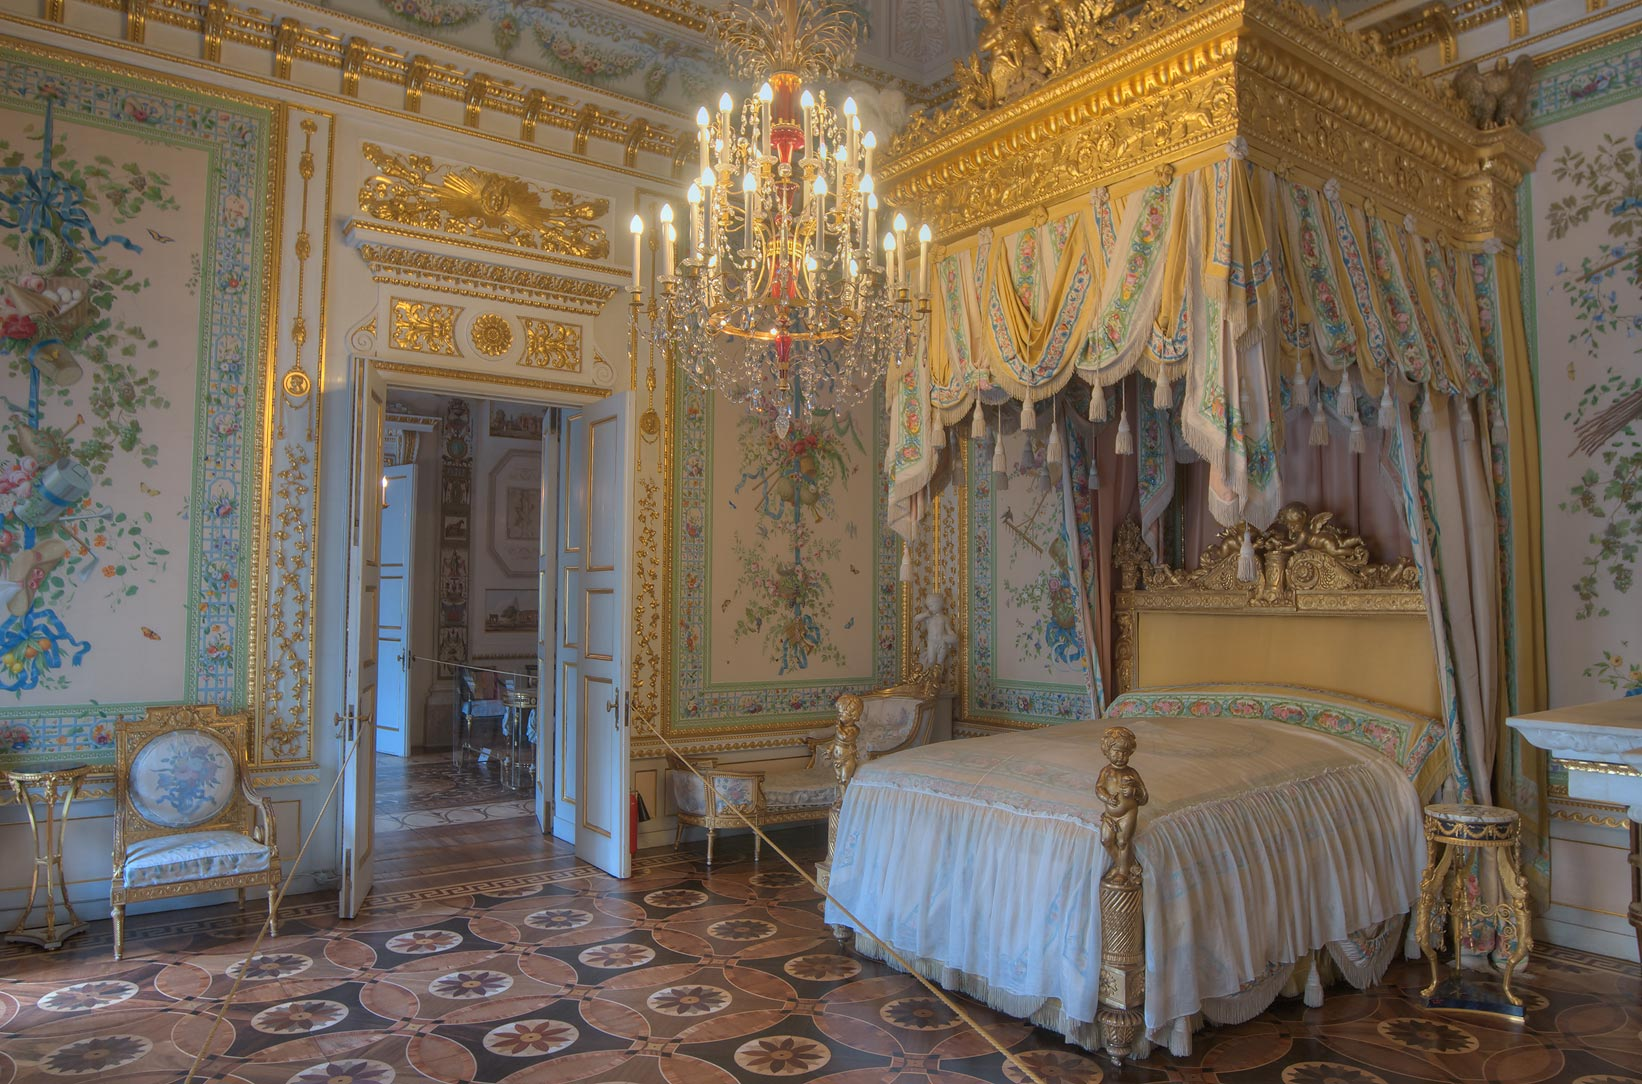 Grand bedroom in Pavlovsky Palace. Pavlovsk, a suburb of St.Petersburg, Russia